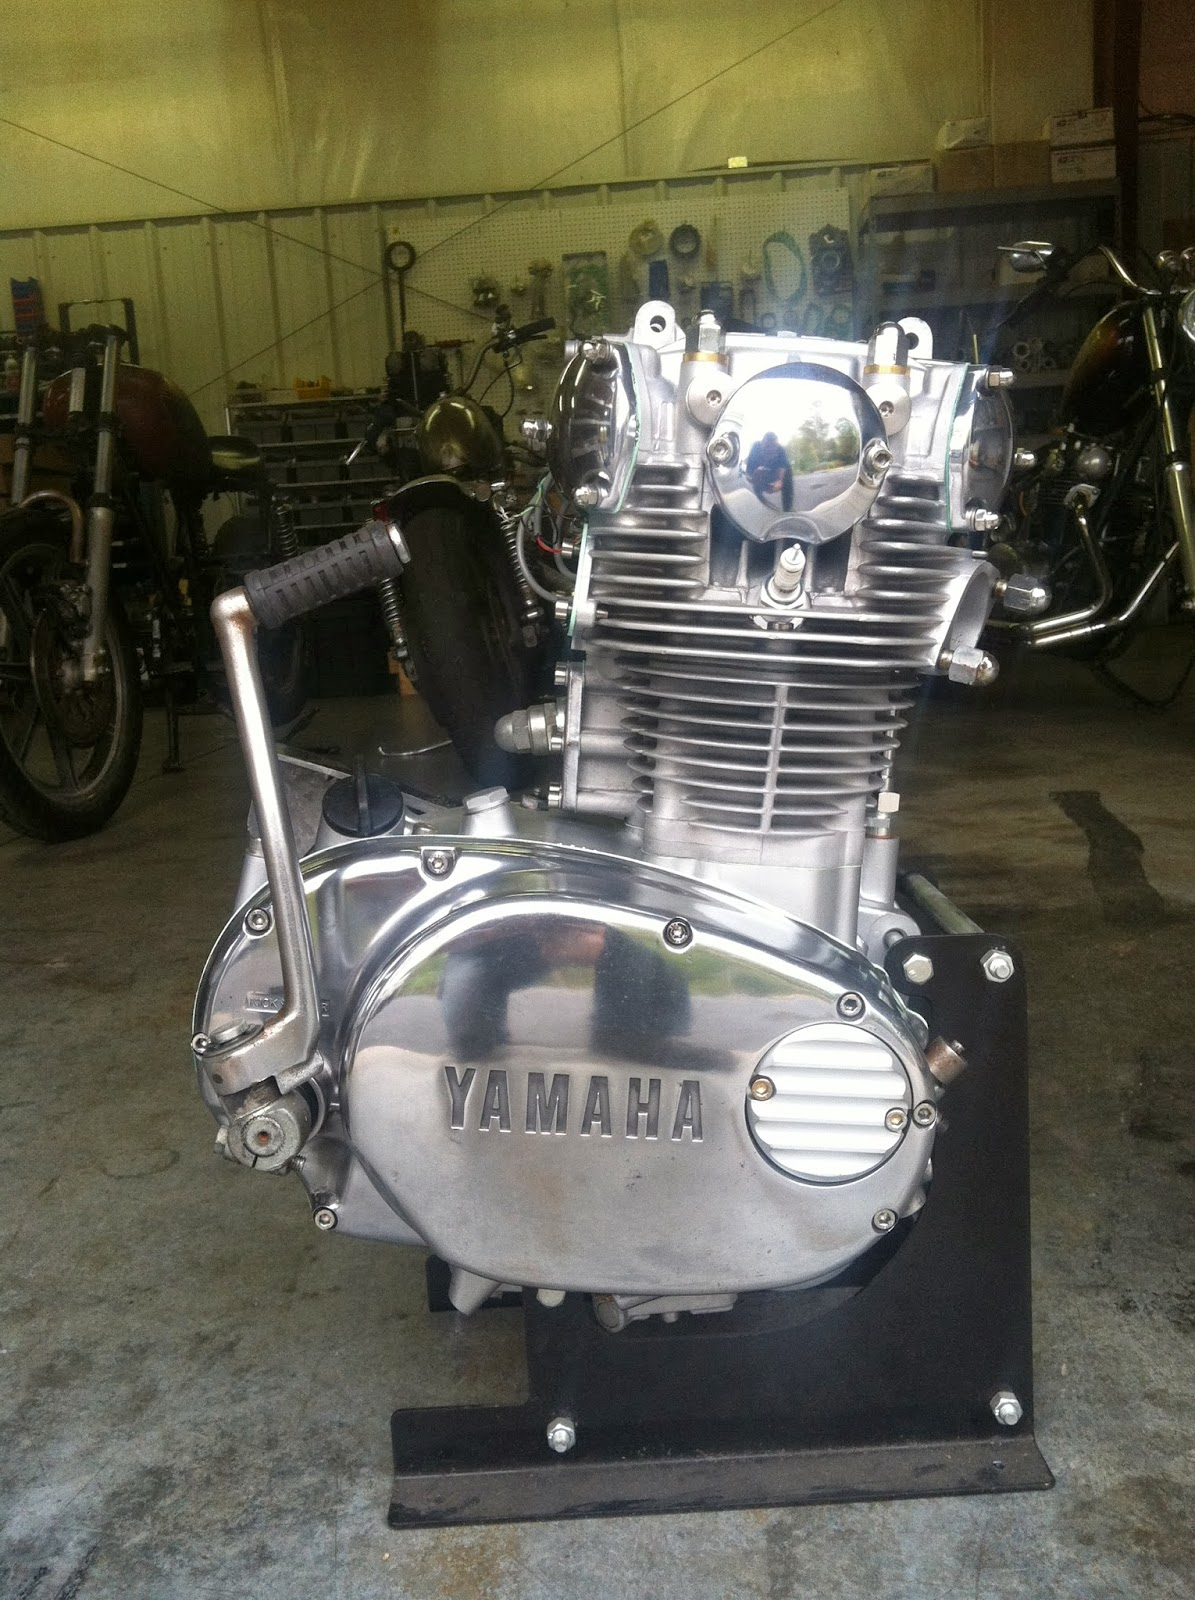 hugh 39 s handbuilt for sale 700cc rephased xs650 engine ready to go. Black Bedroom Furniture Sets. Home Design Ideas